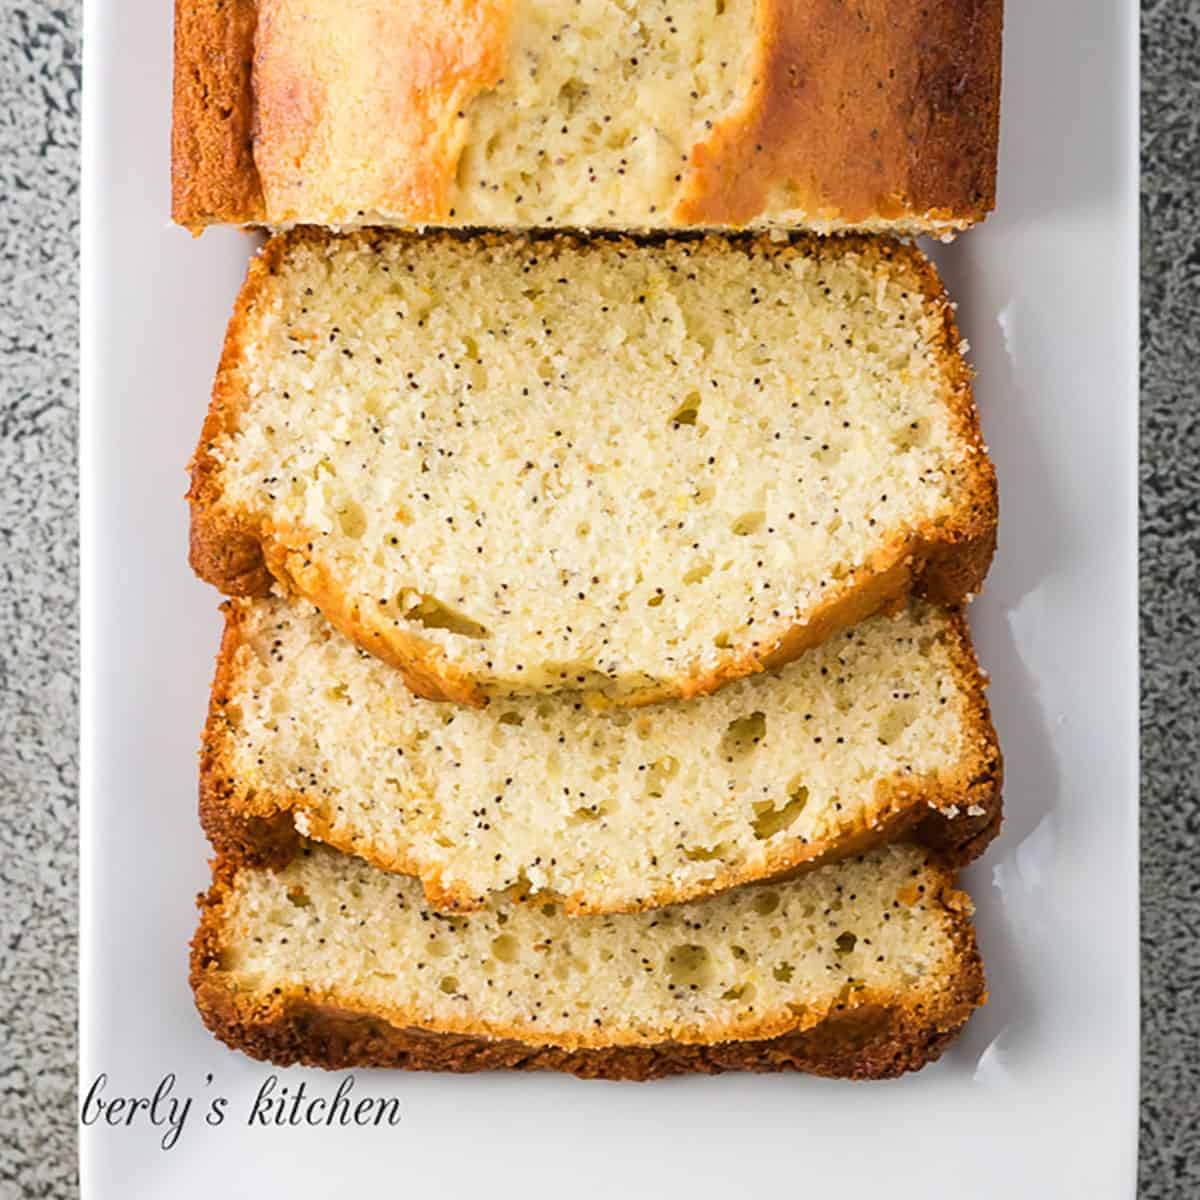 Top down view of lemon poppy seed bread on a white platter.